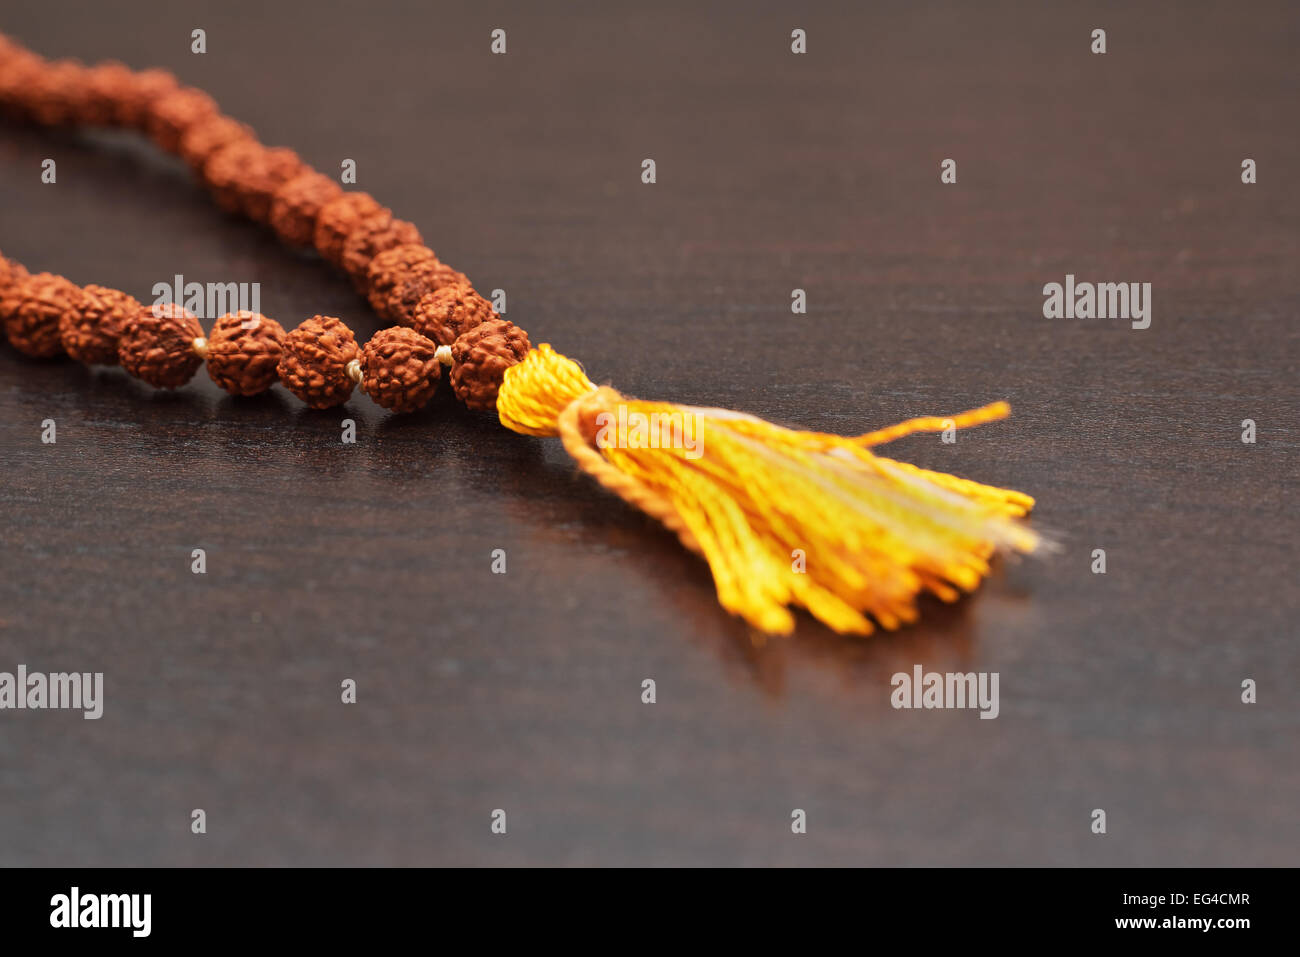 Japa mala on the table. Prayer beads made from the seeds of the rudraksha tree Stock Photo